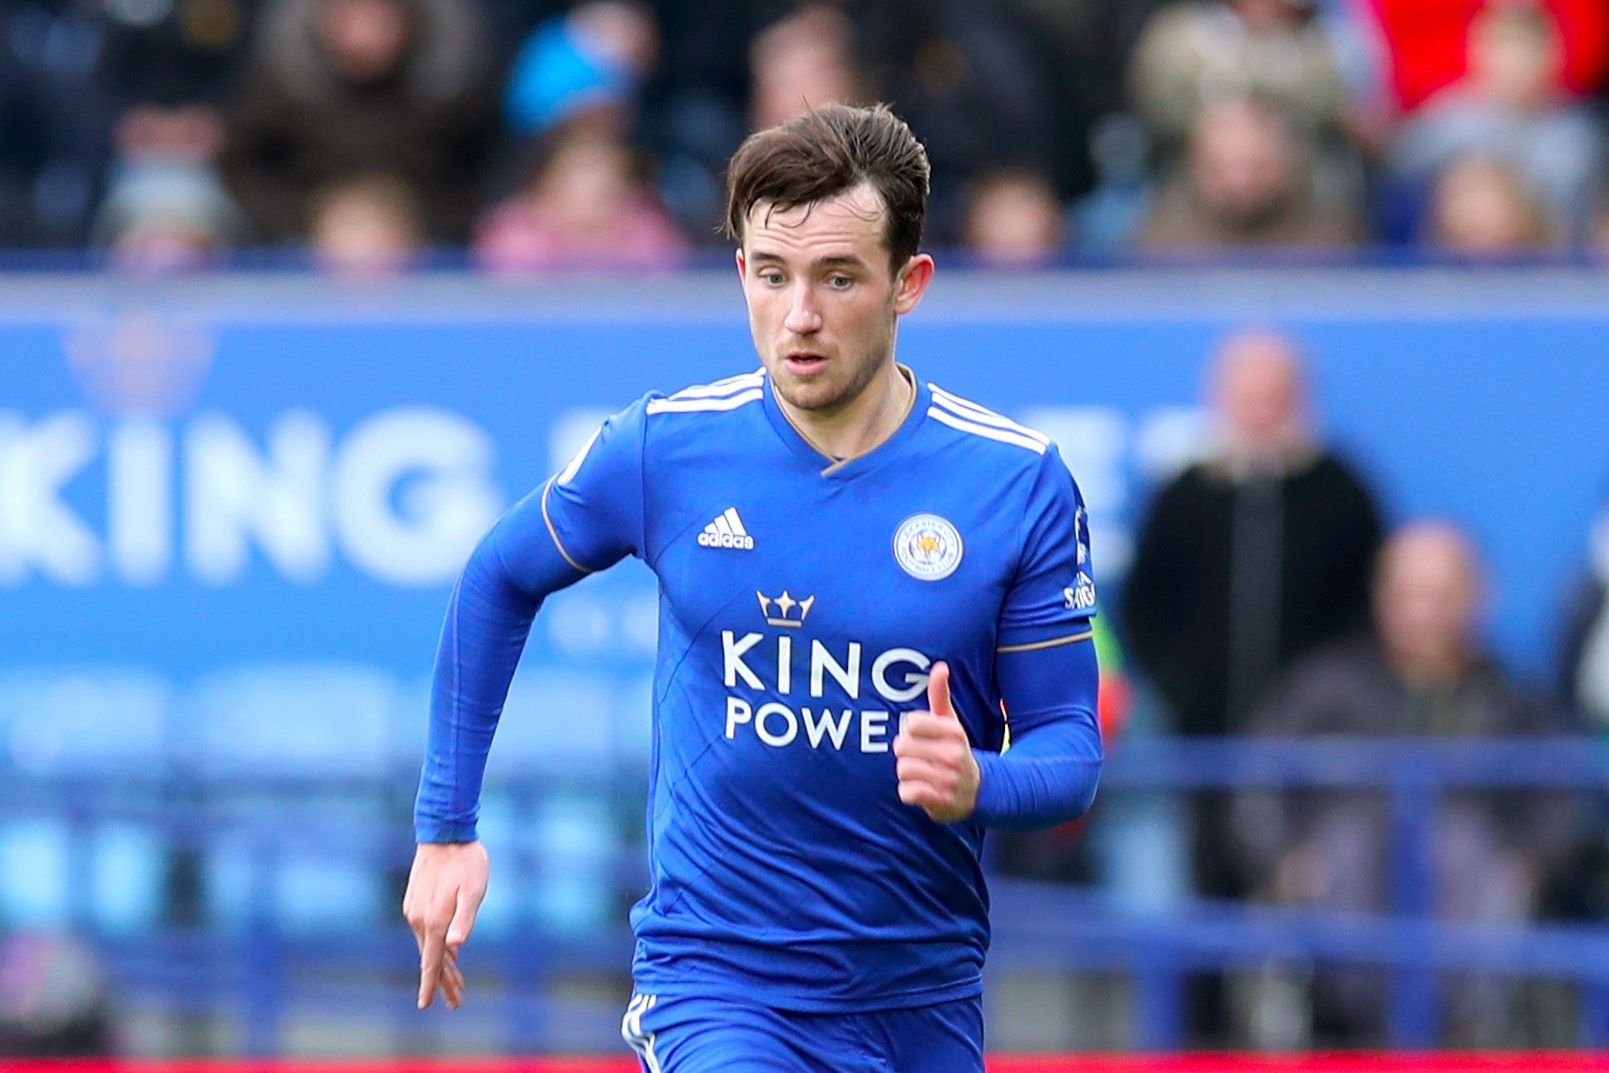 Leicester's Ben Chilwell is likely to be in demand